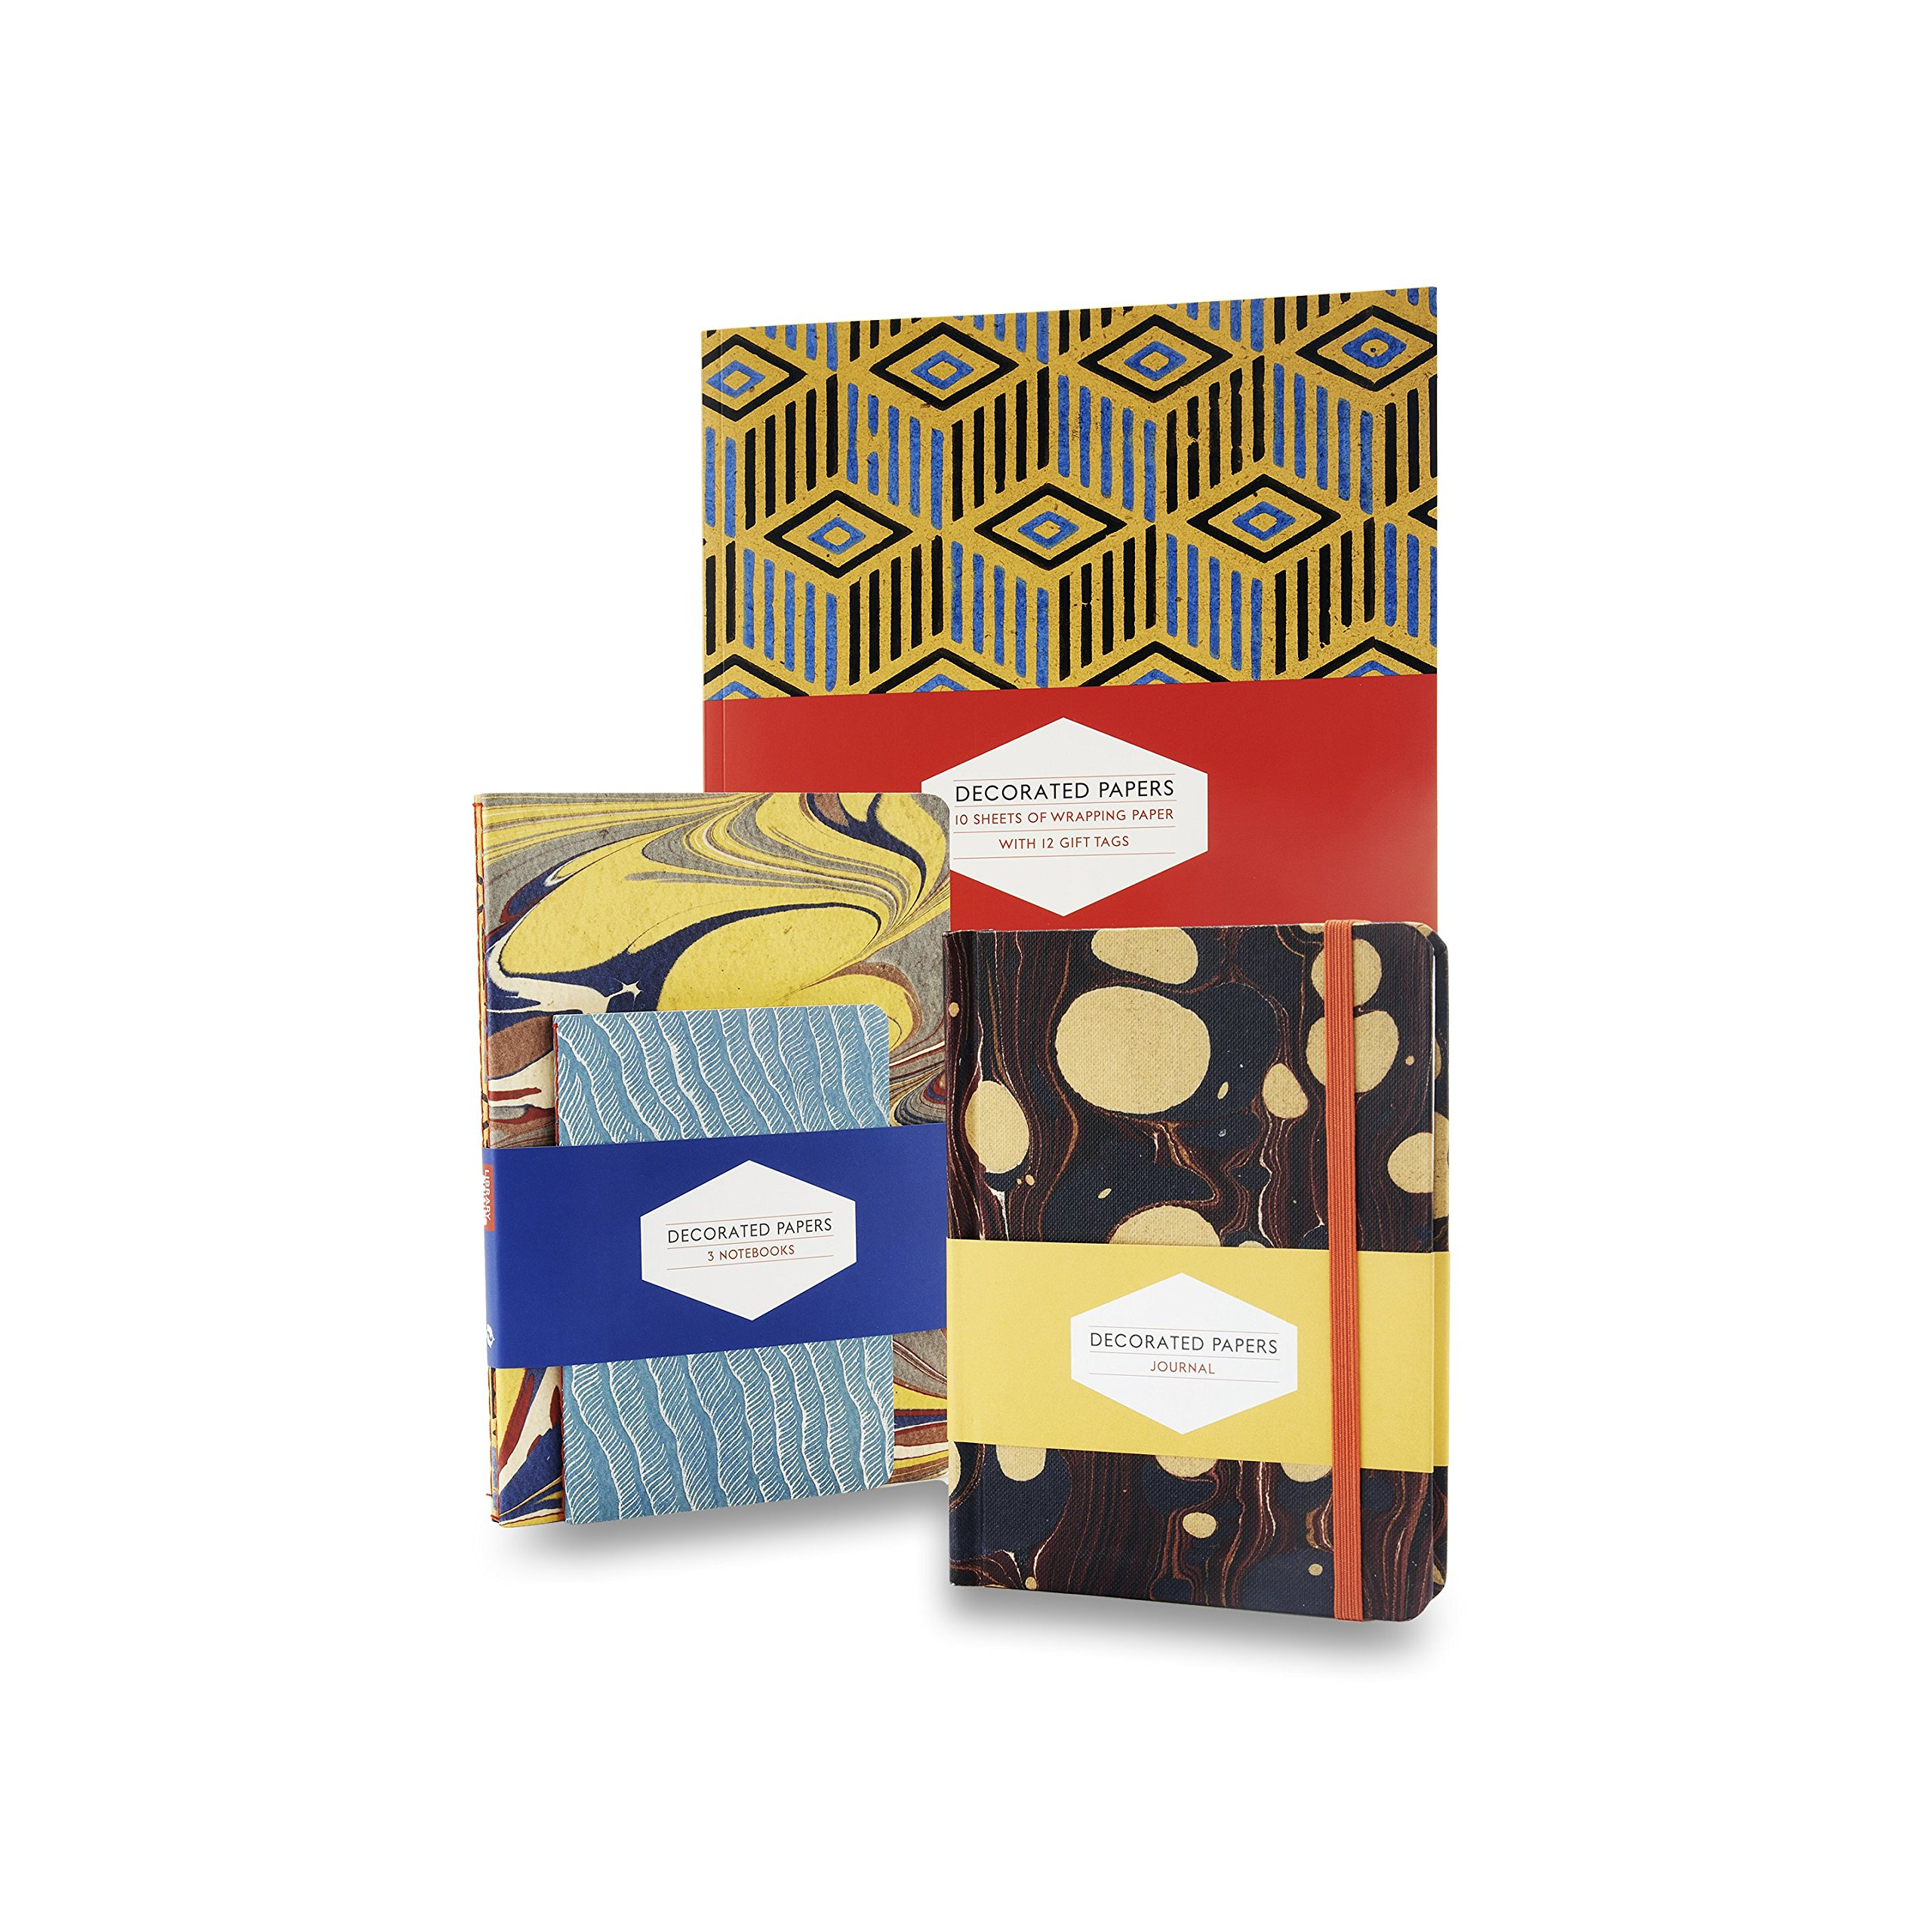 Decorated Papers: Gift Wrapping Paper Book: 10 Sheets of ...